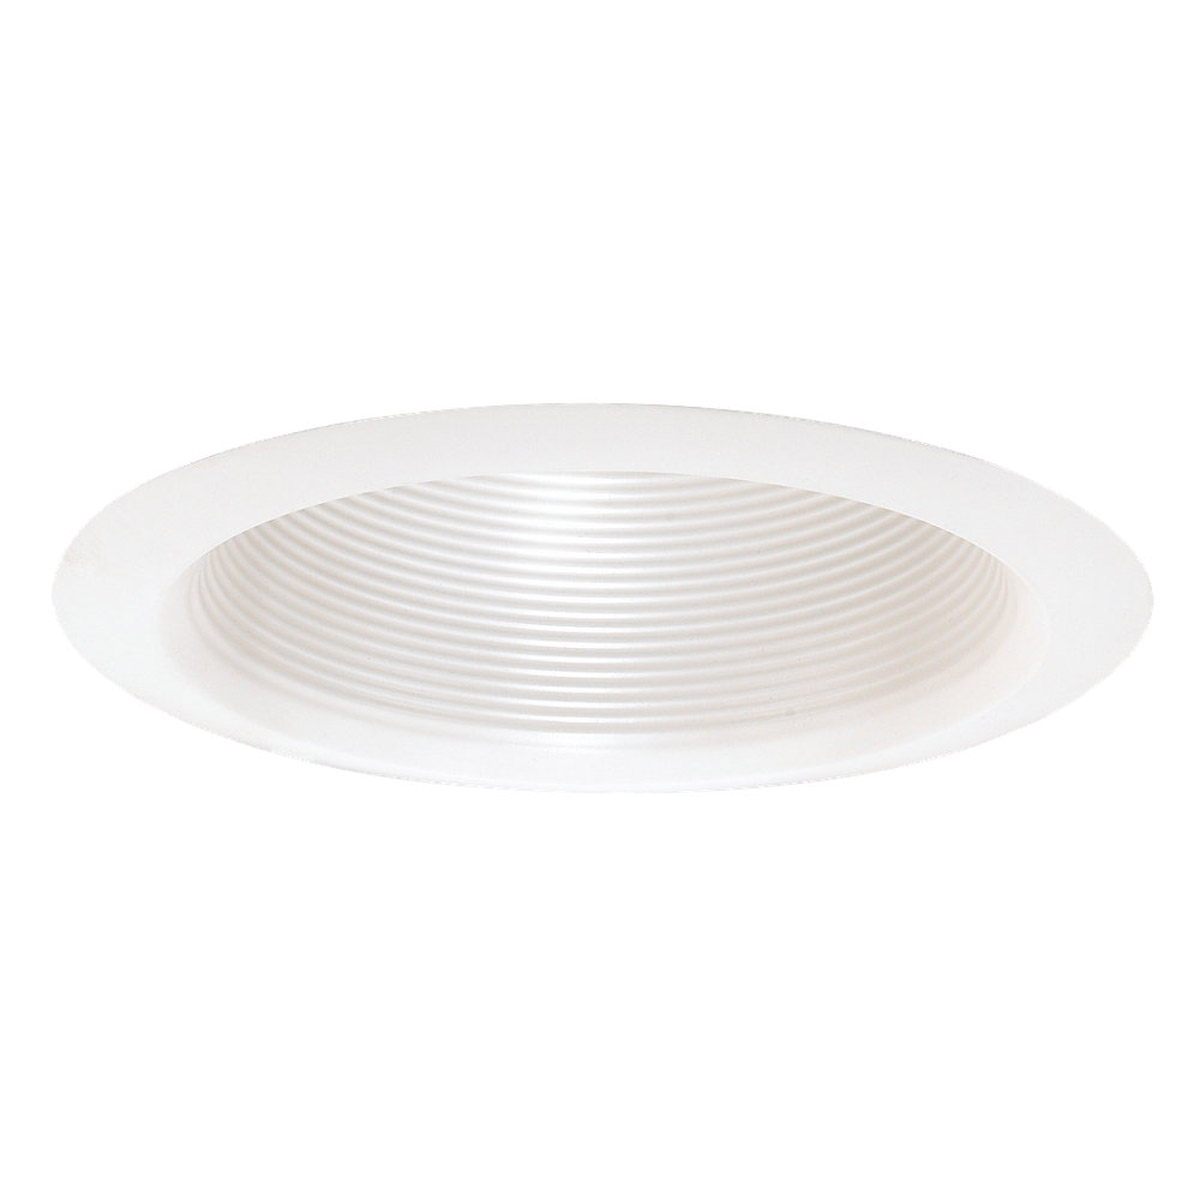 Sea Gull 1158AT-14 Signature White Recessed Trim in White Baffle photo